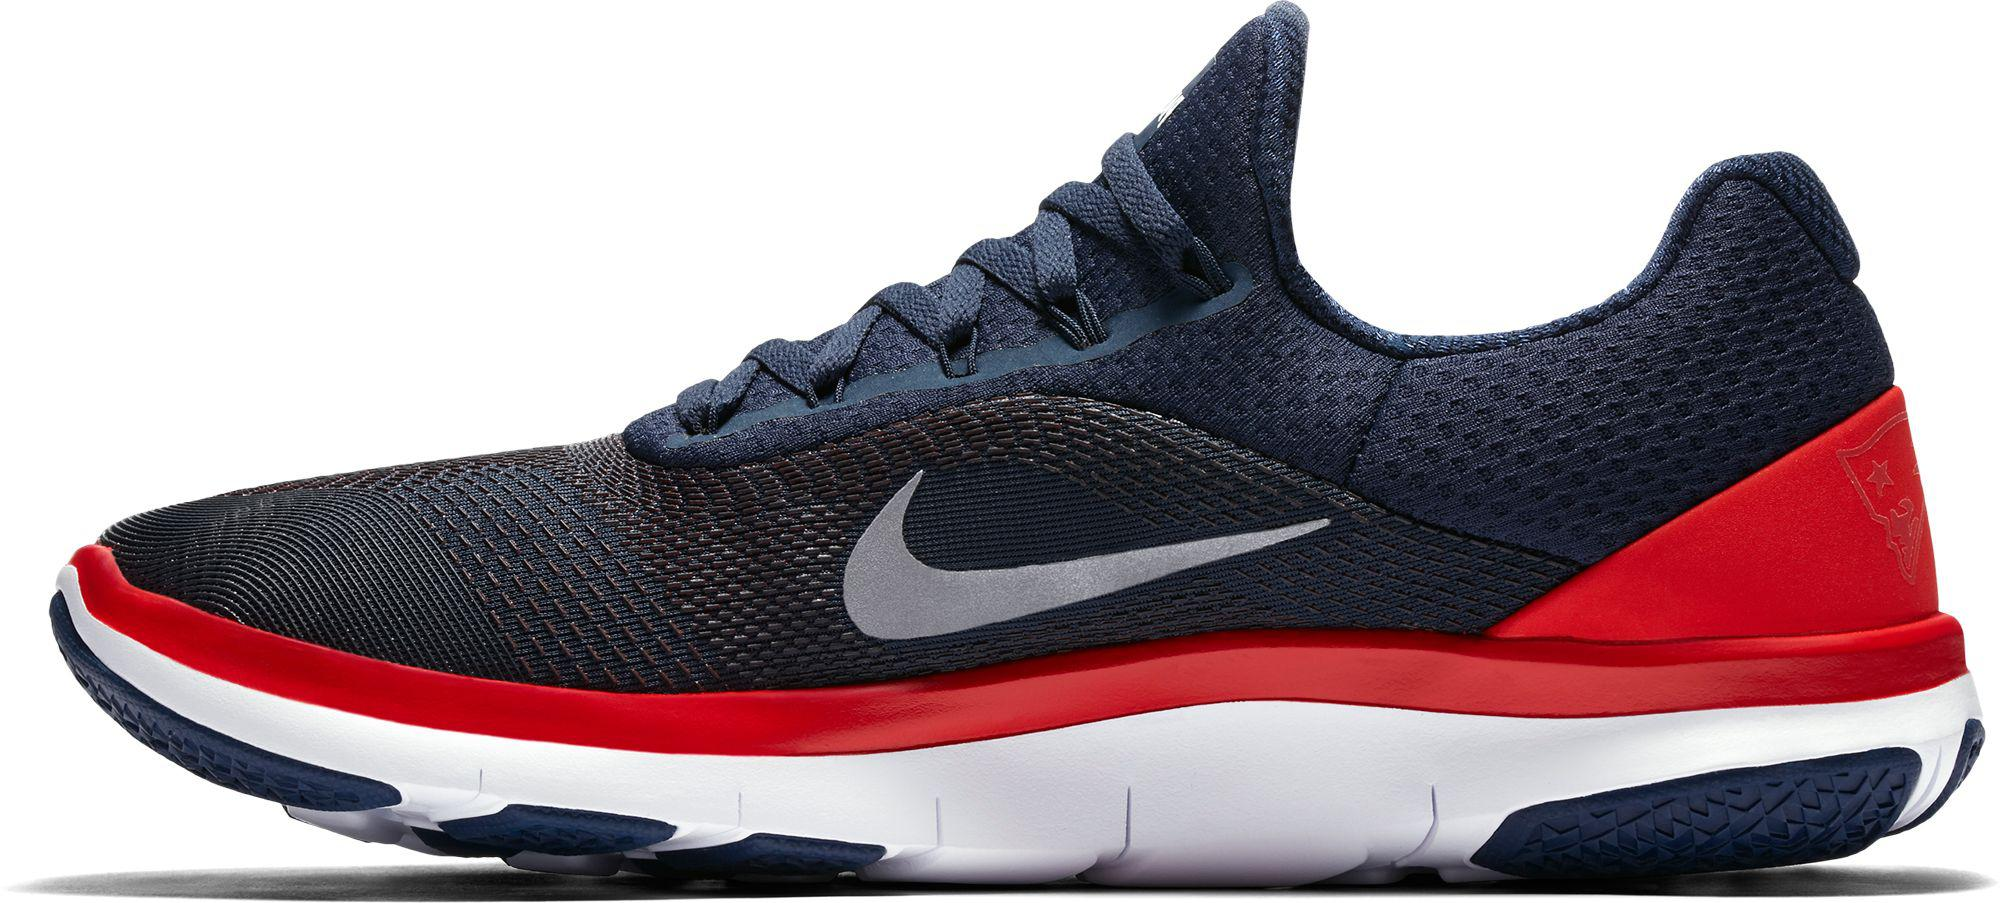 d26f24e1688e Gallery. Previously sold at  Dick s Sporting Goods · Men s Nike Free ...